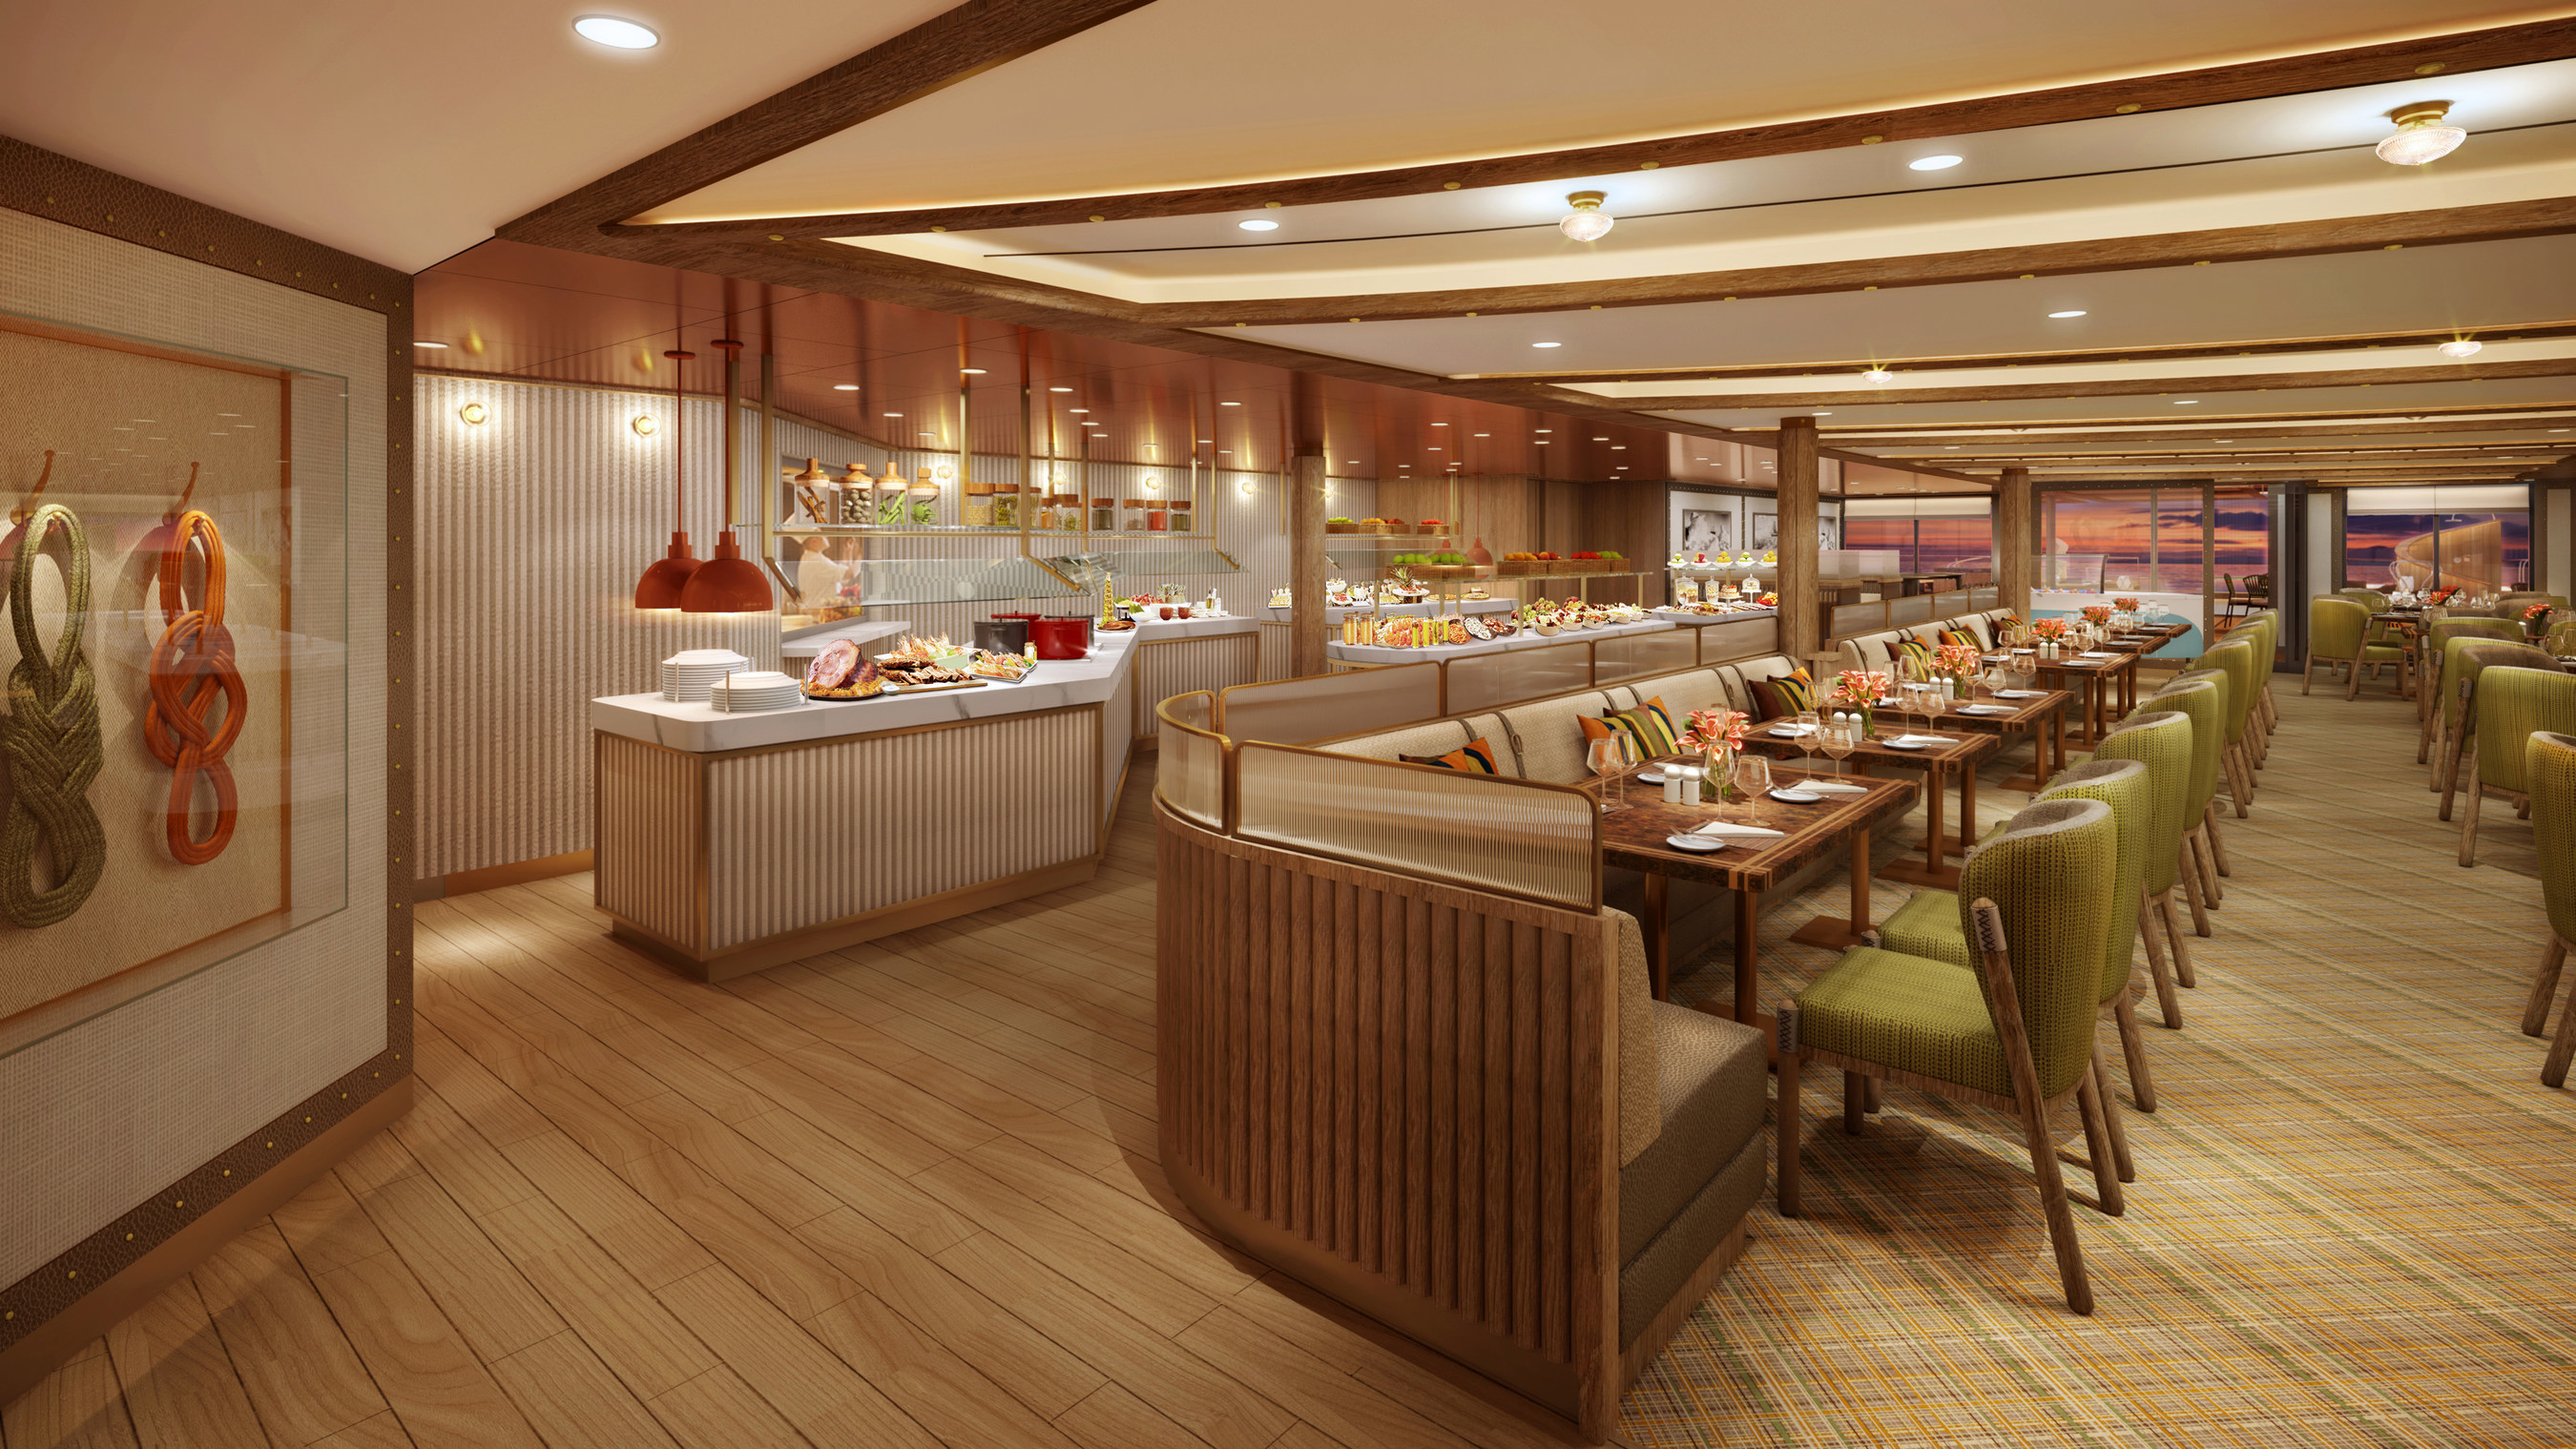 Seabourn Outlines Details For 'The Colonnade' Dining Venue On Its New Seabourn Venture